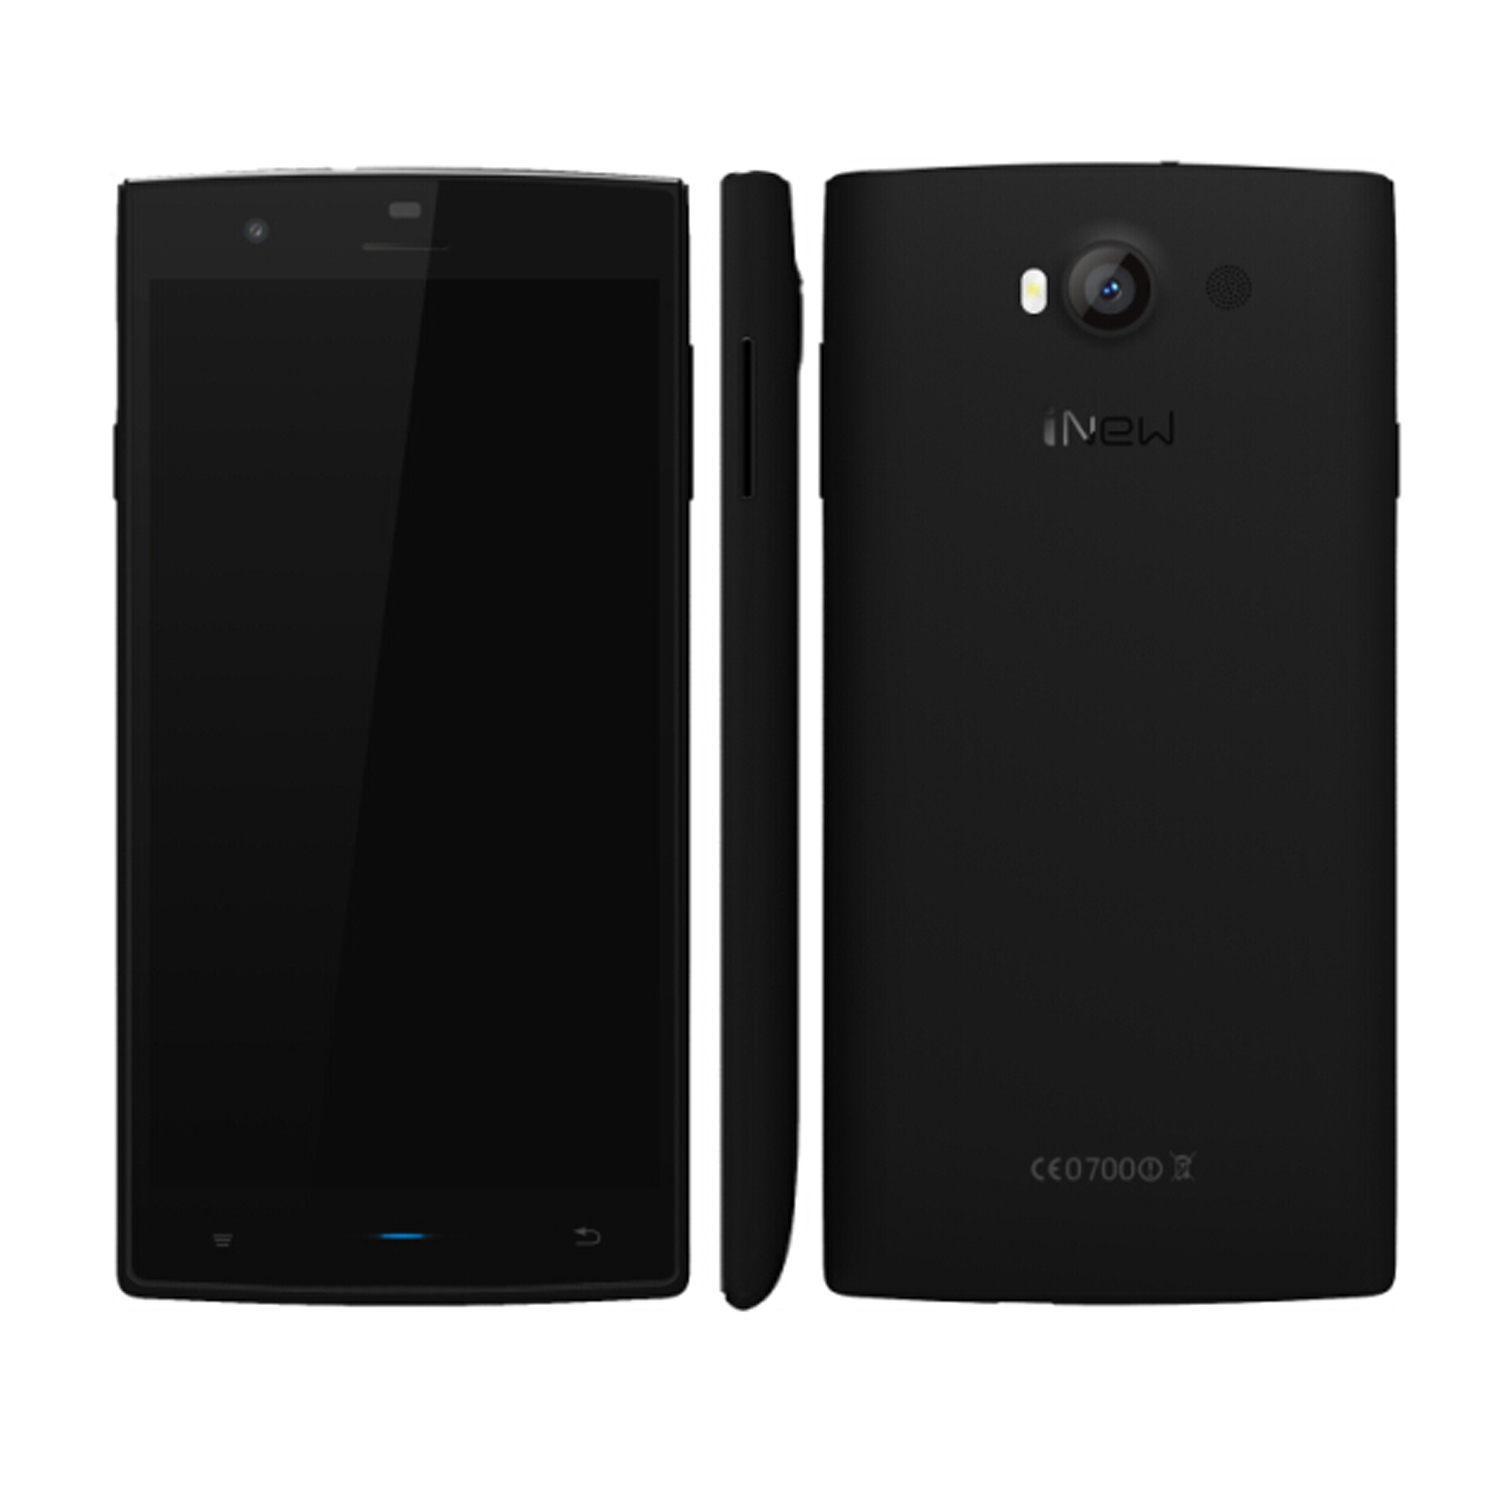 iNew V1 Smartphone Android 4.4 MTK6582 5.0 Inch 1GB 8GB 3G Black